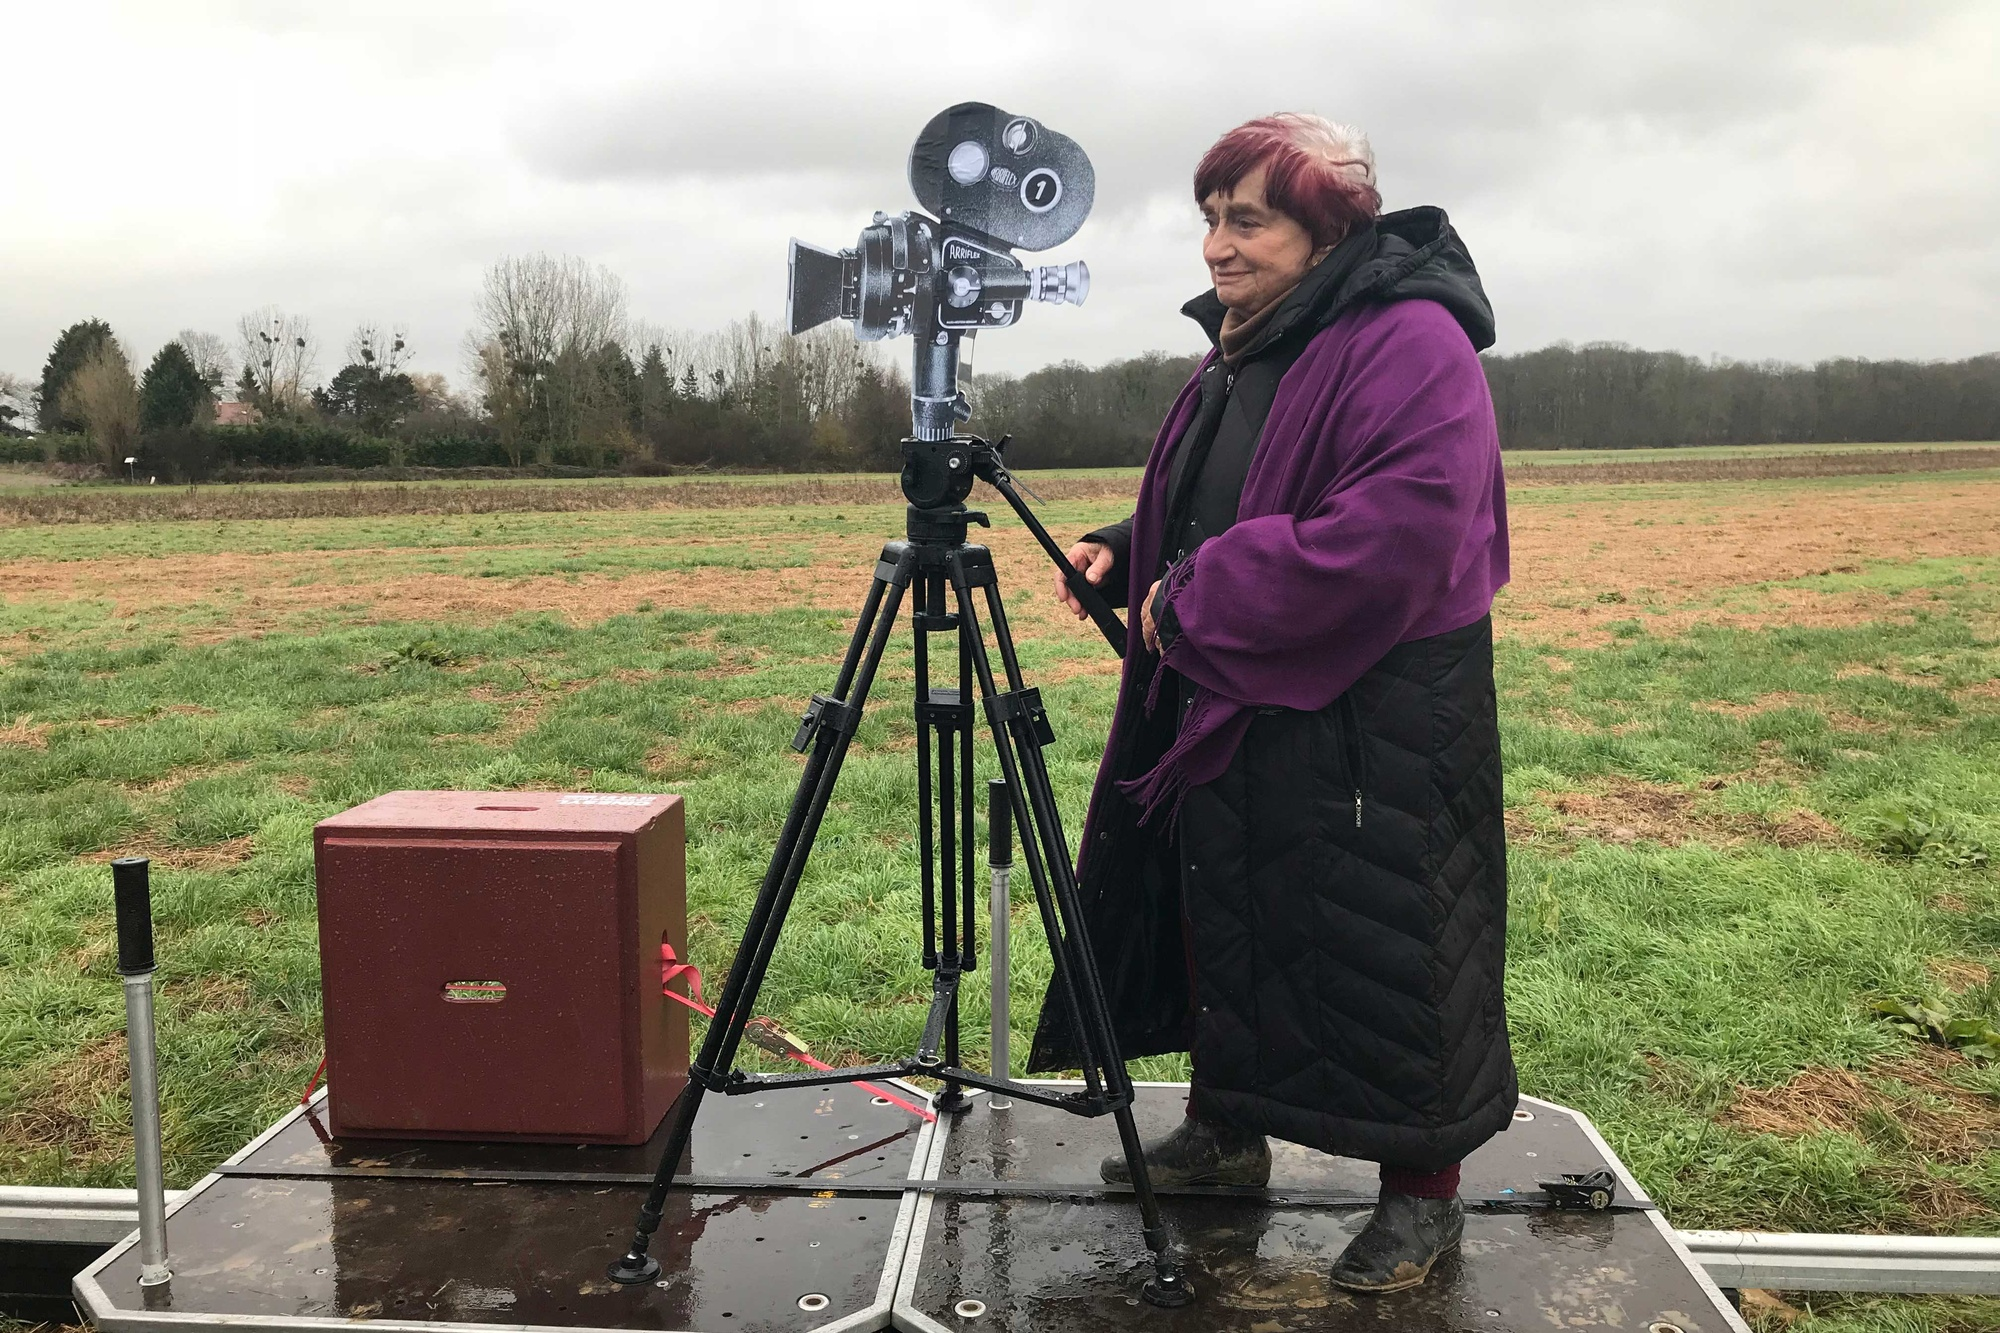 Varda by Agnès. 2019. France. Directed by Agnès Varda. Courtesy Ciné Tamaris